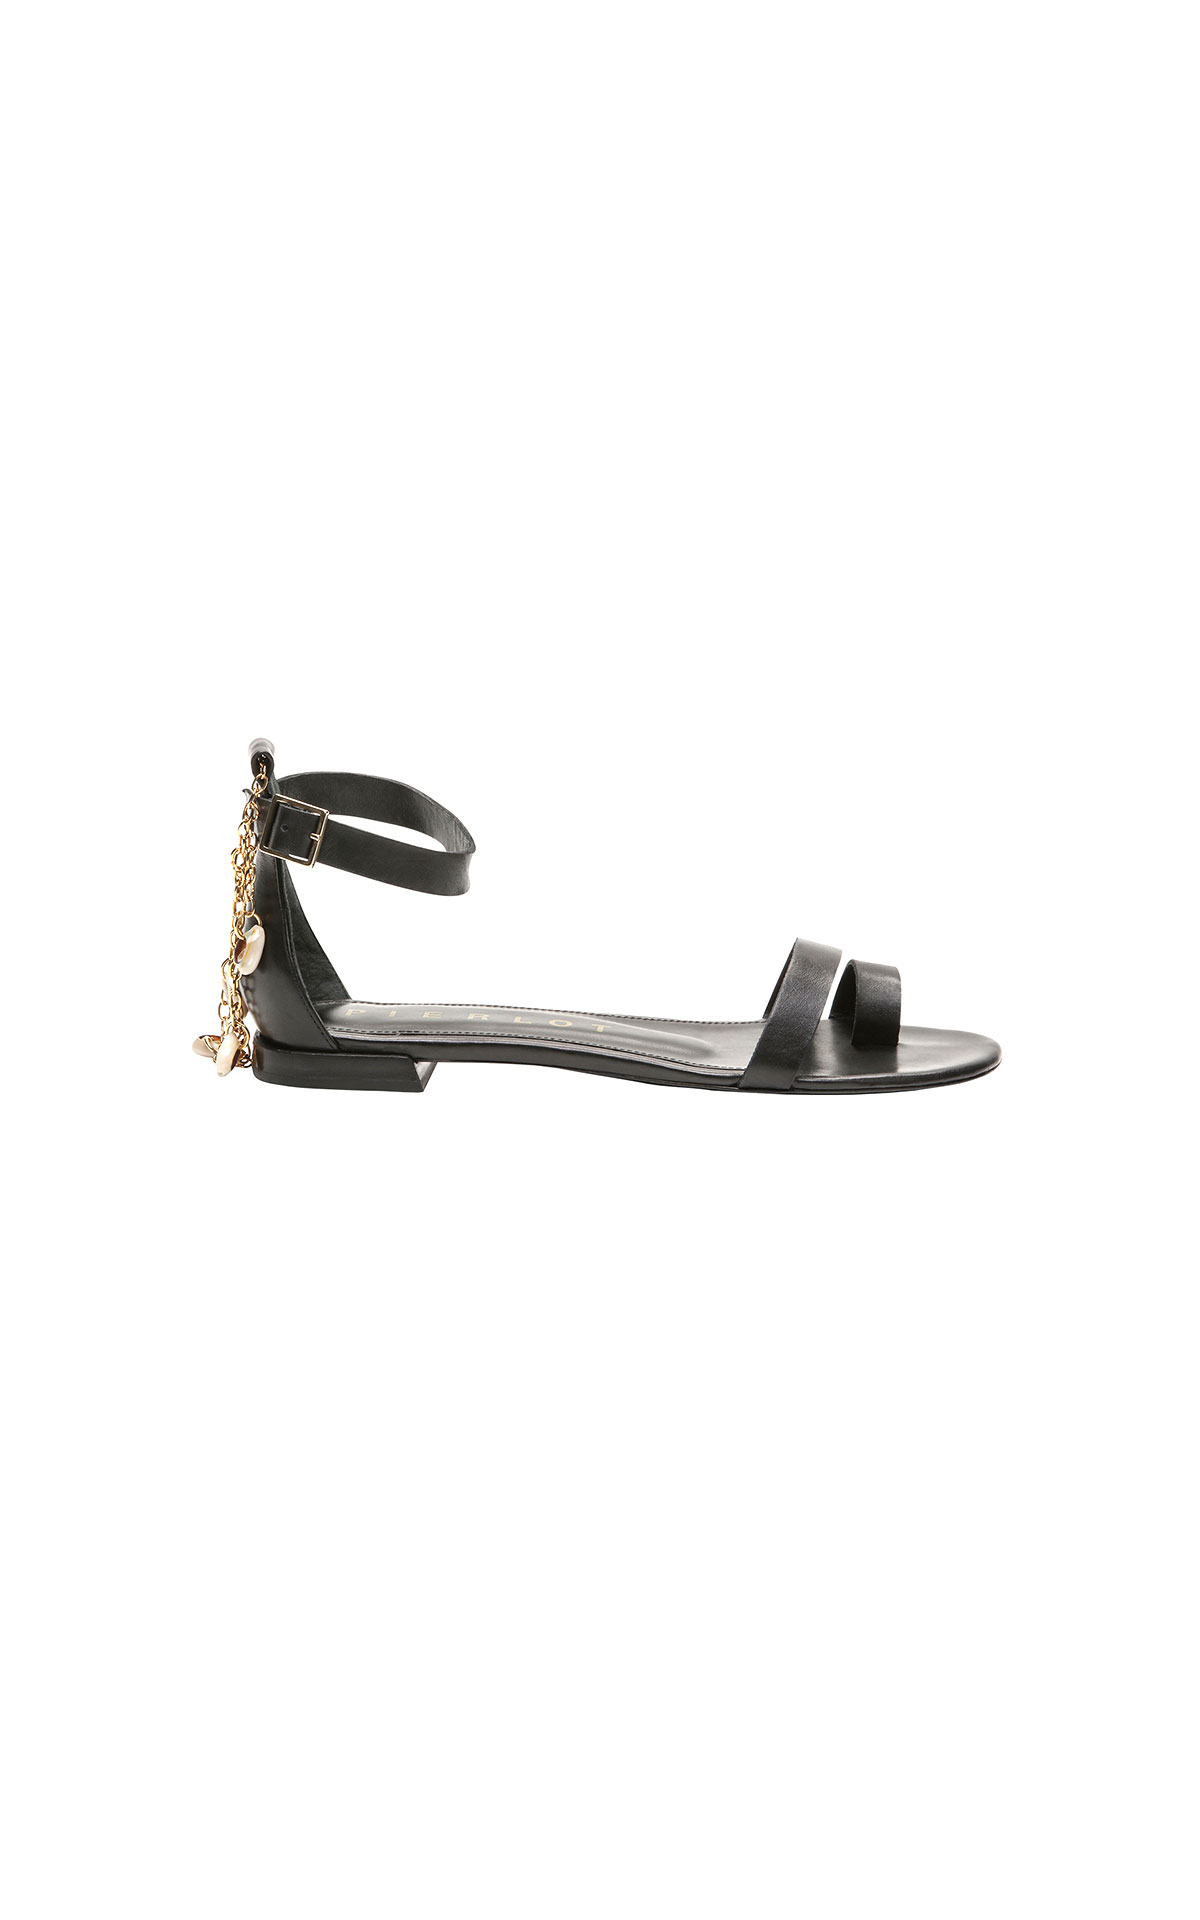 Claudie Pierlot black sandal at The Bicester Village Shopping Collection